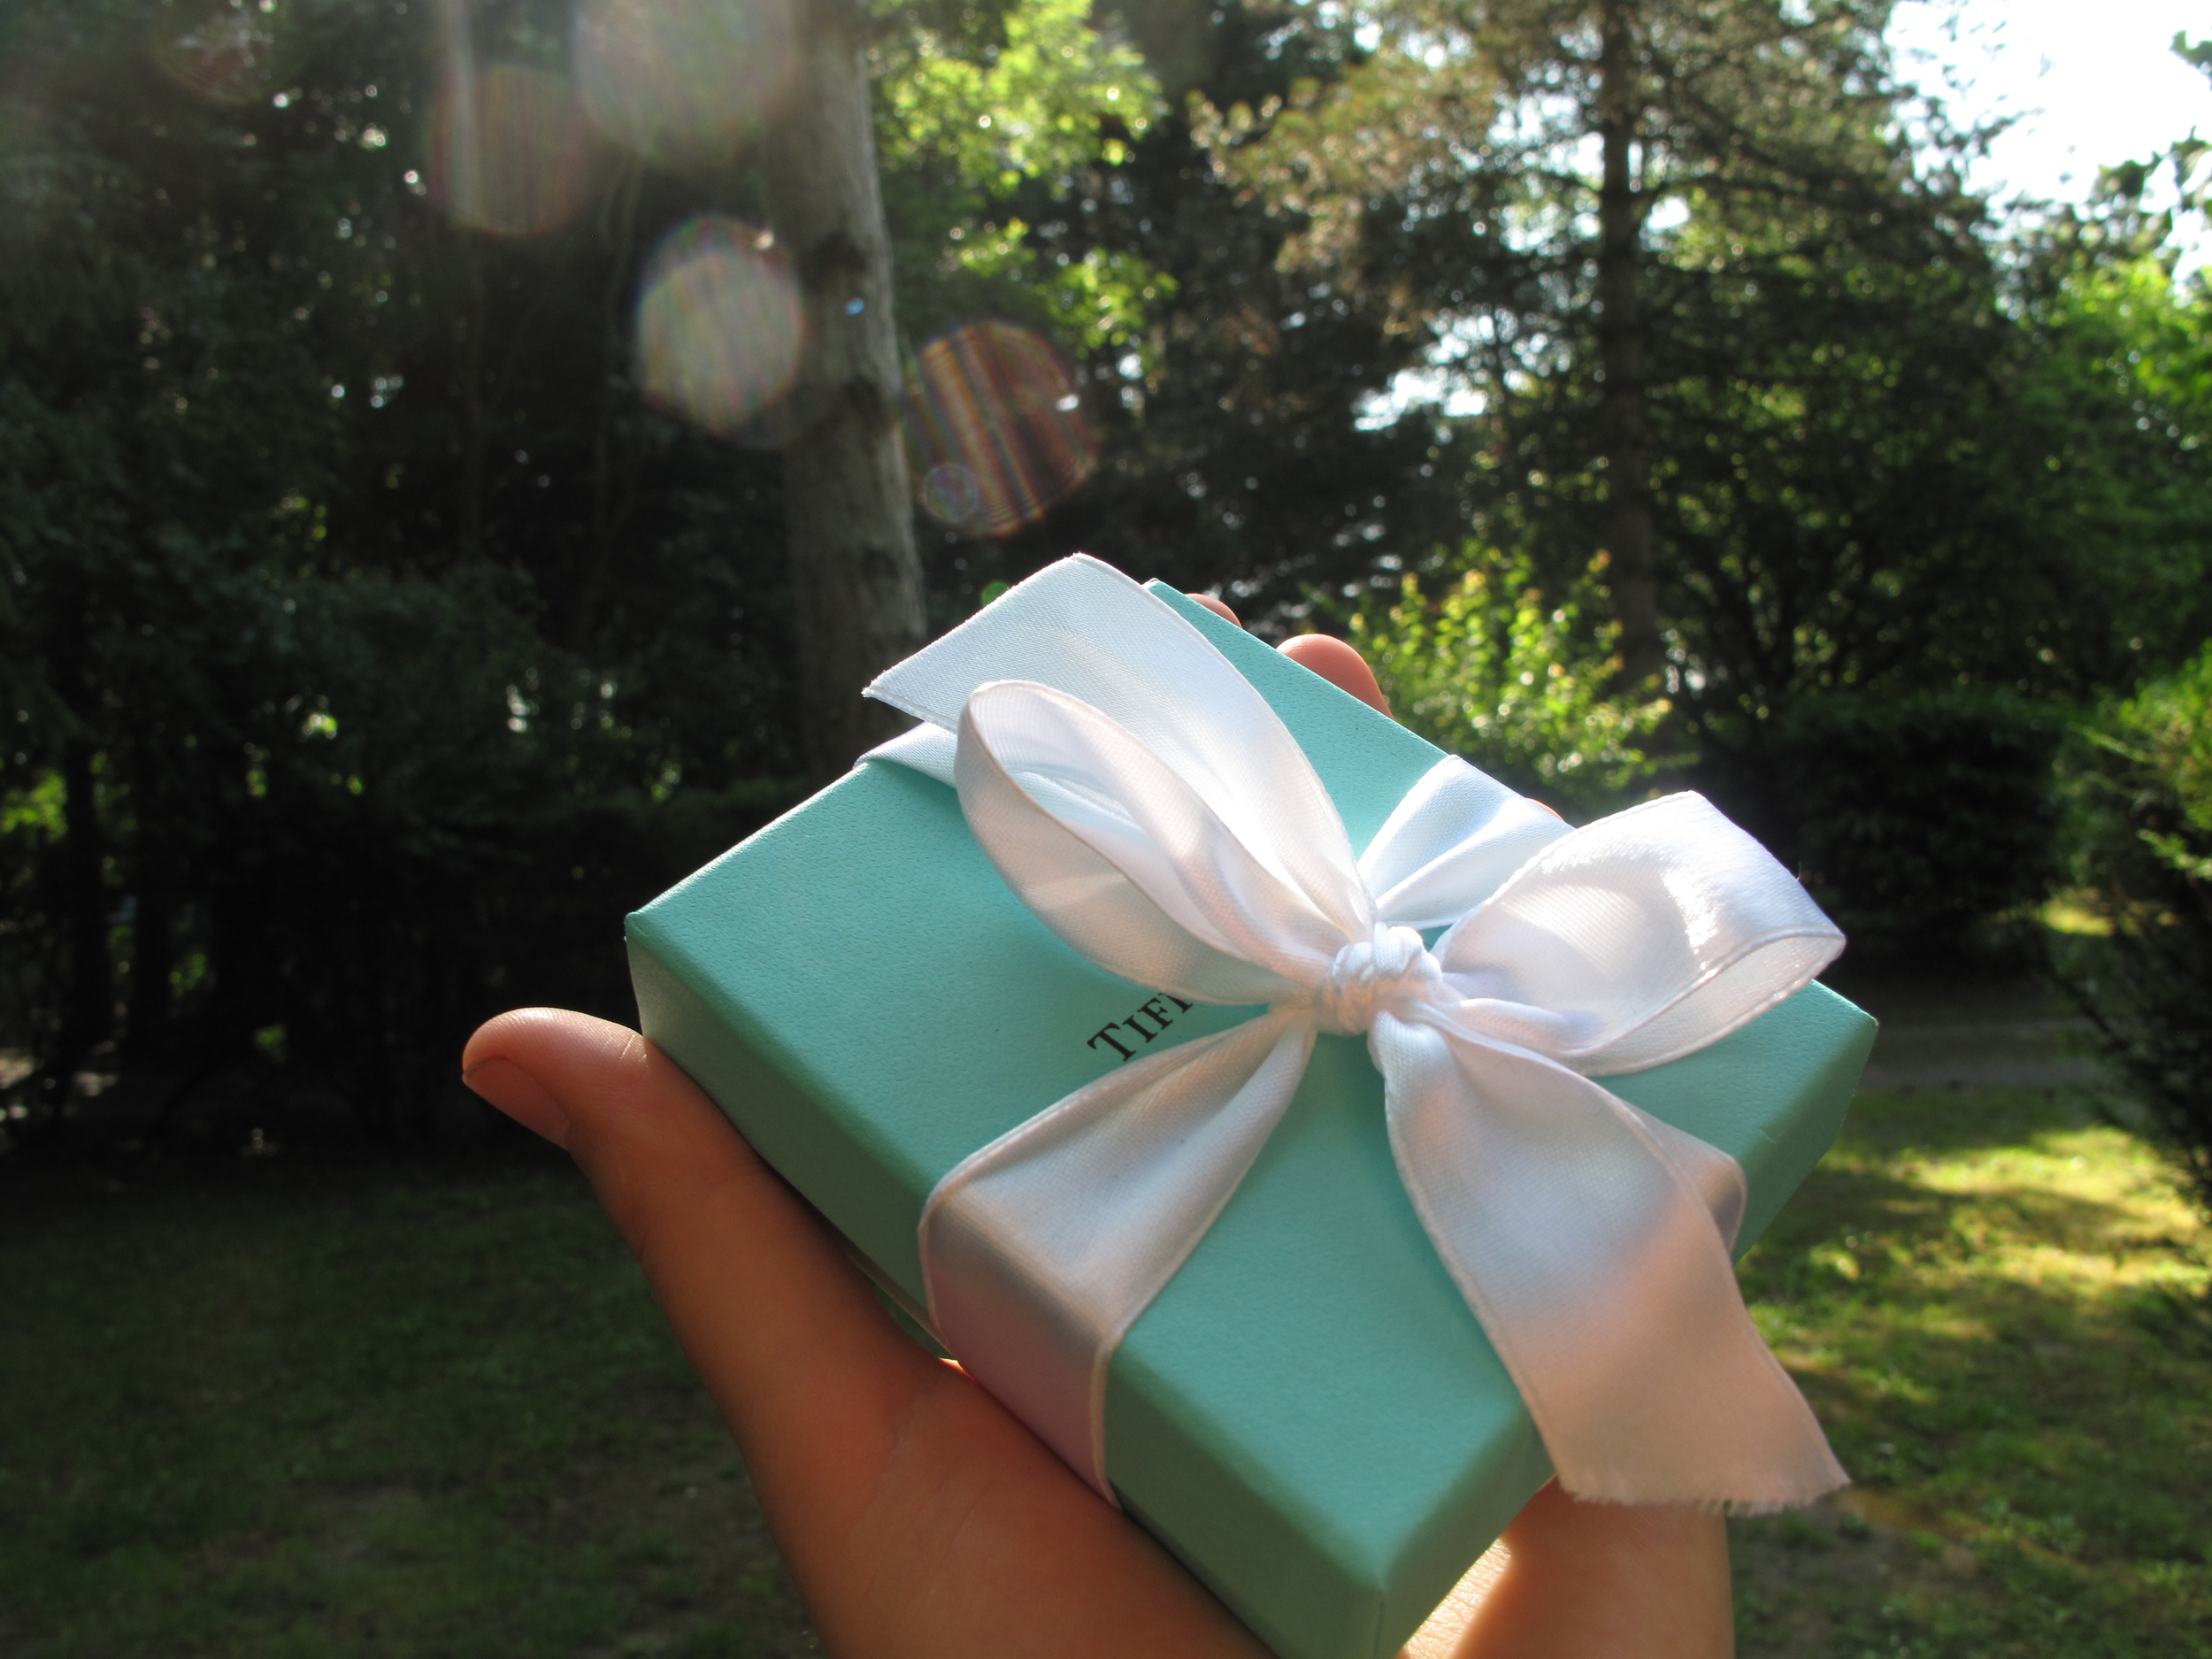 A tiffany's box